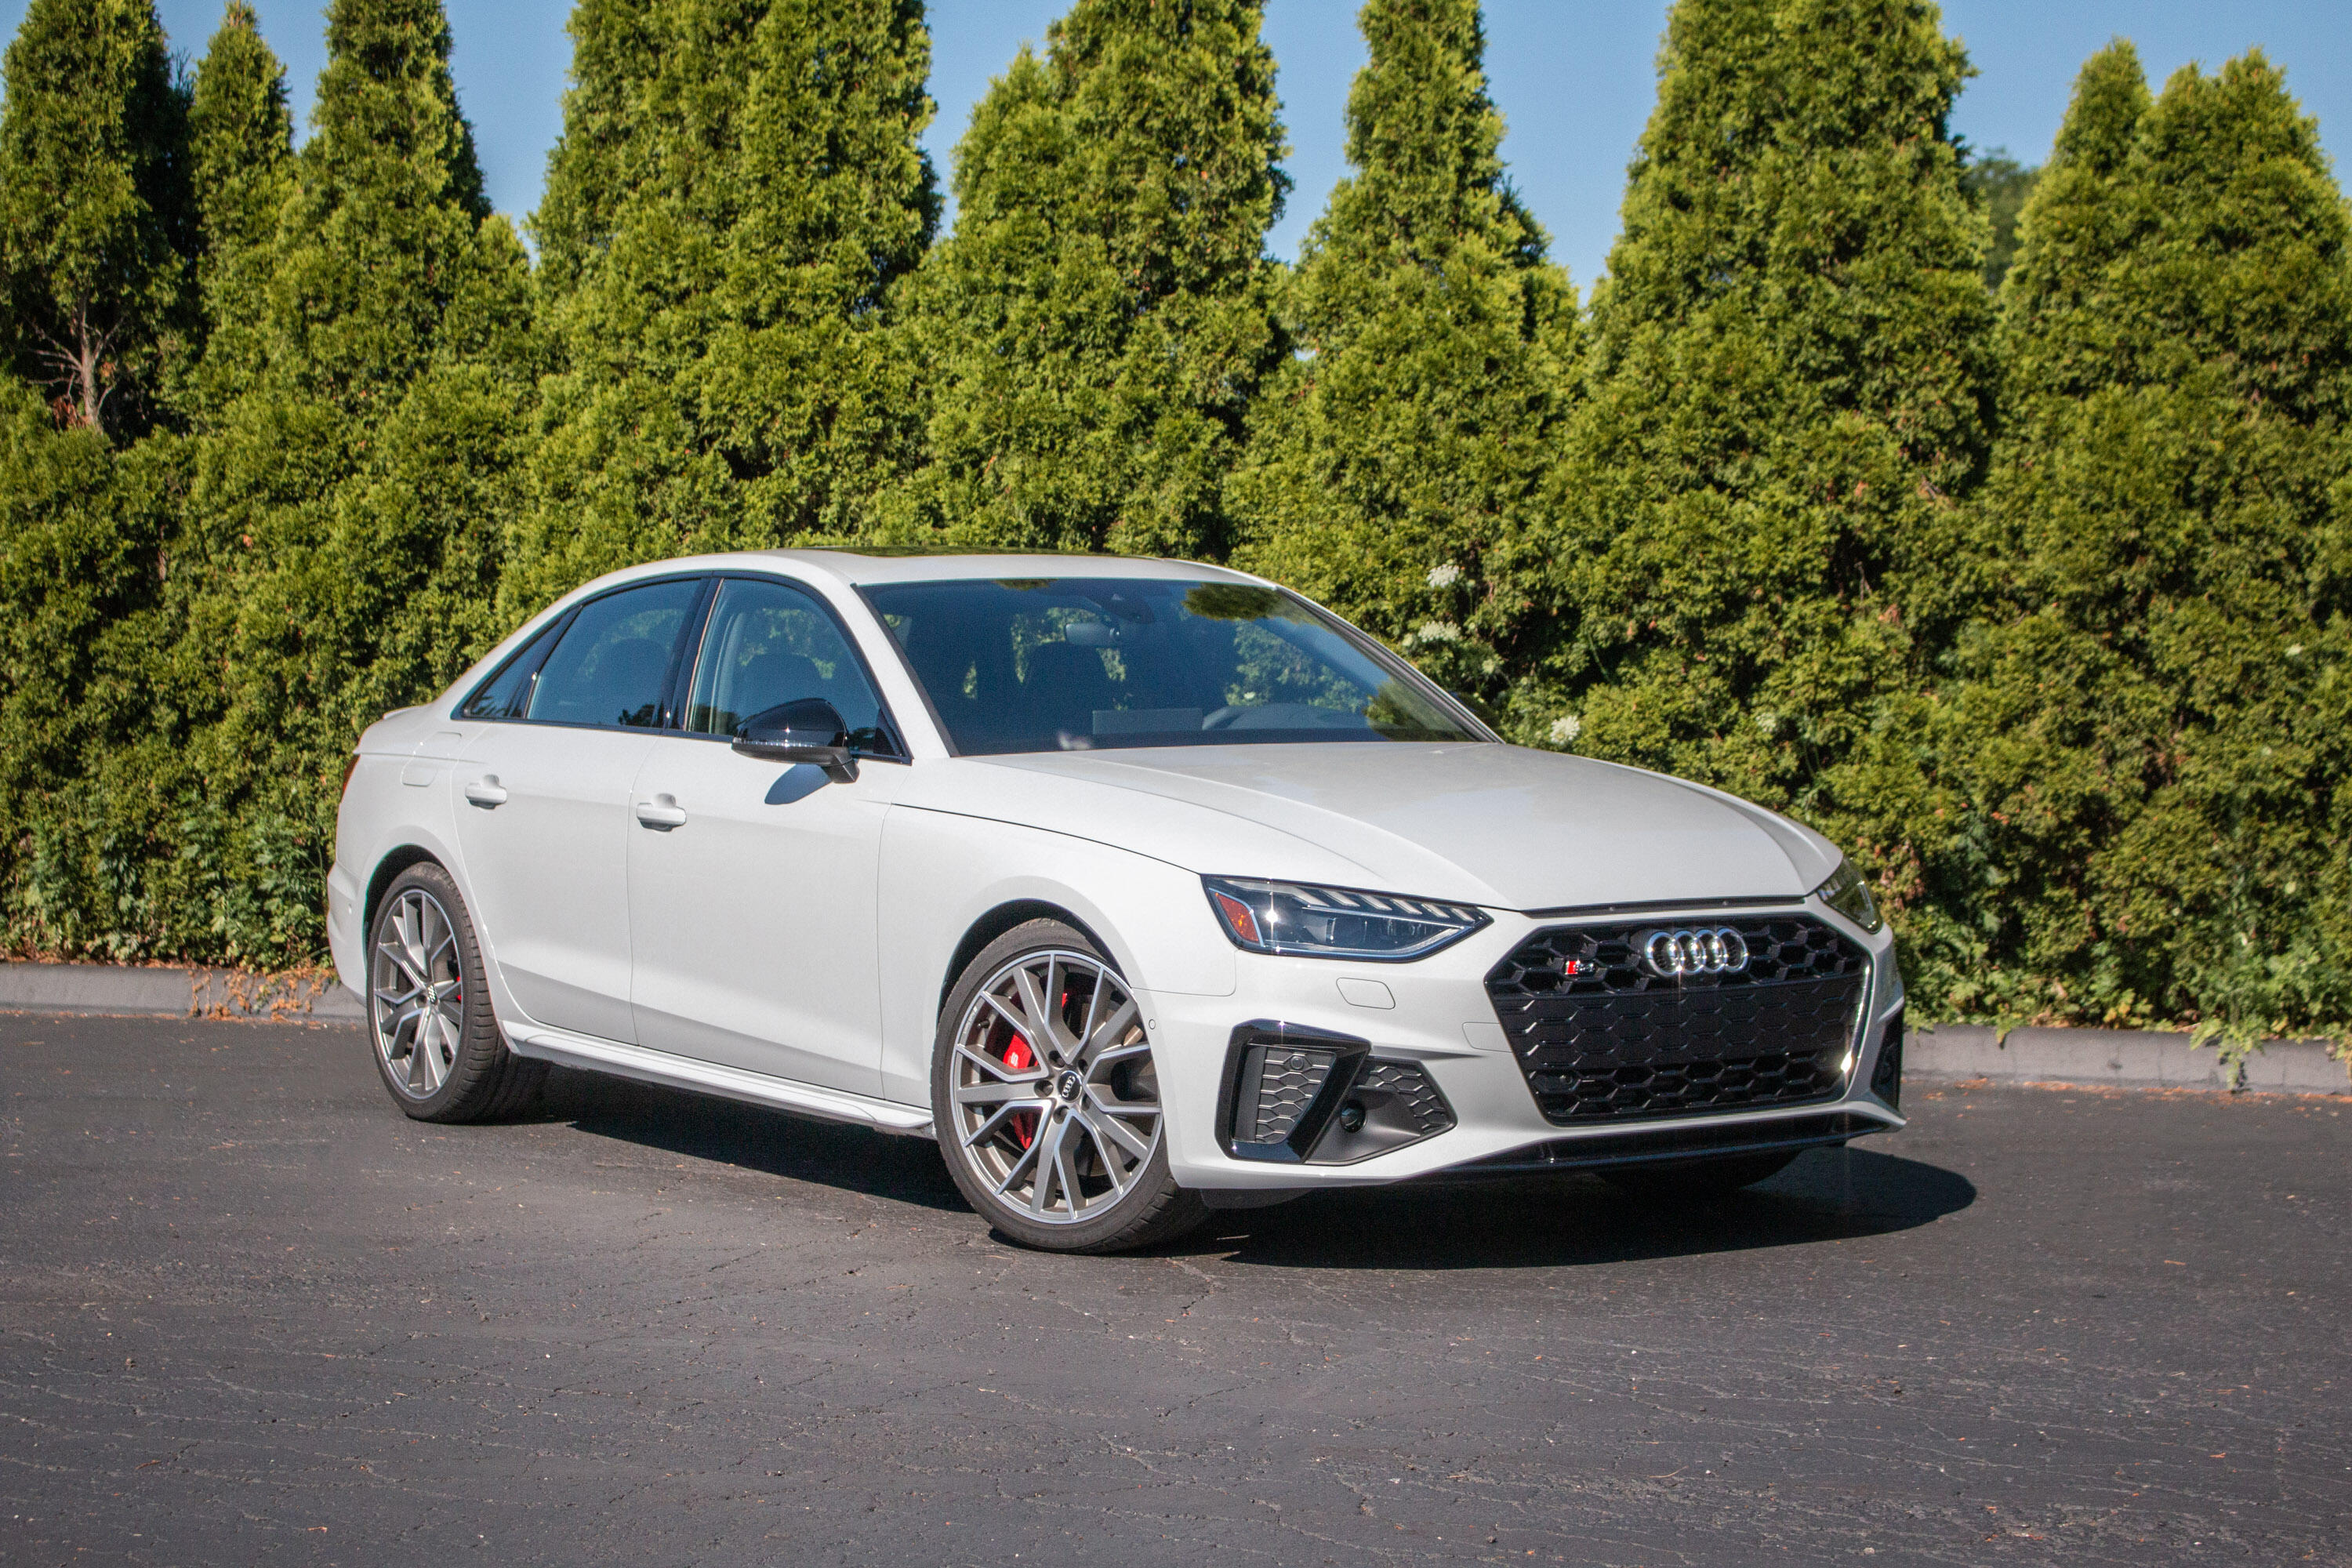 2022 Audi S4 reviews, news, pictures, and video - Roadshow